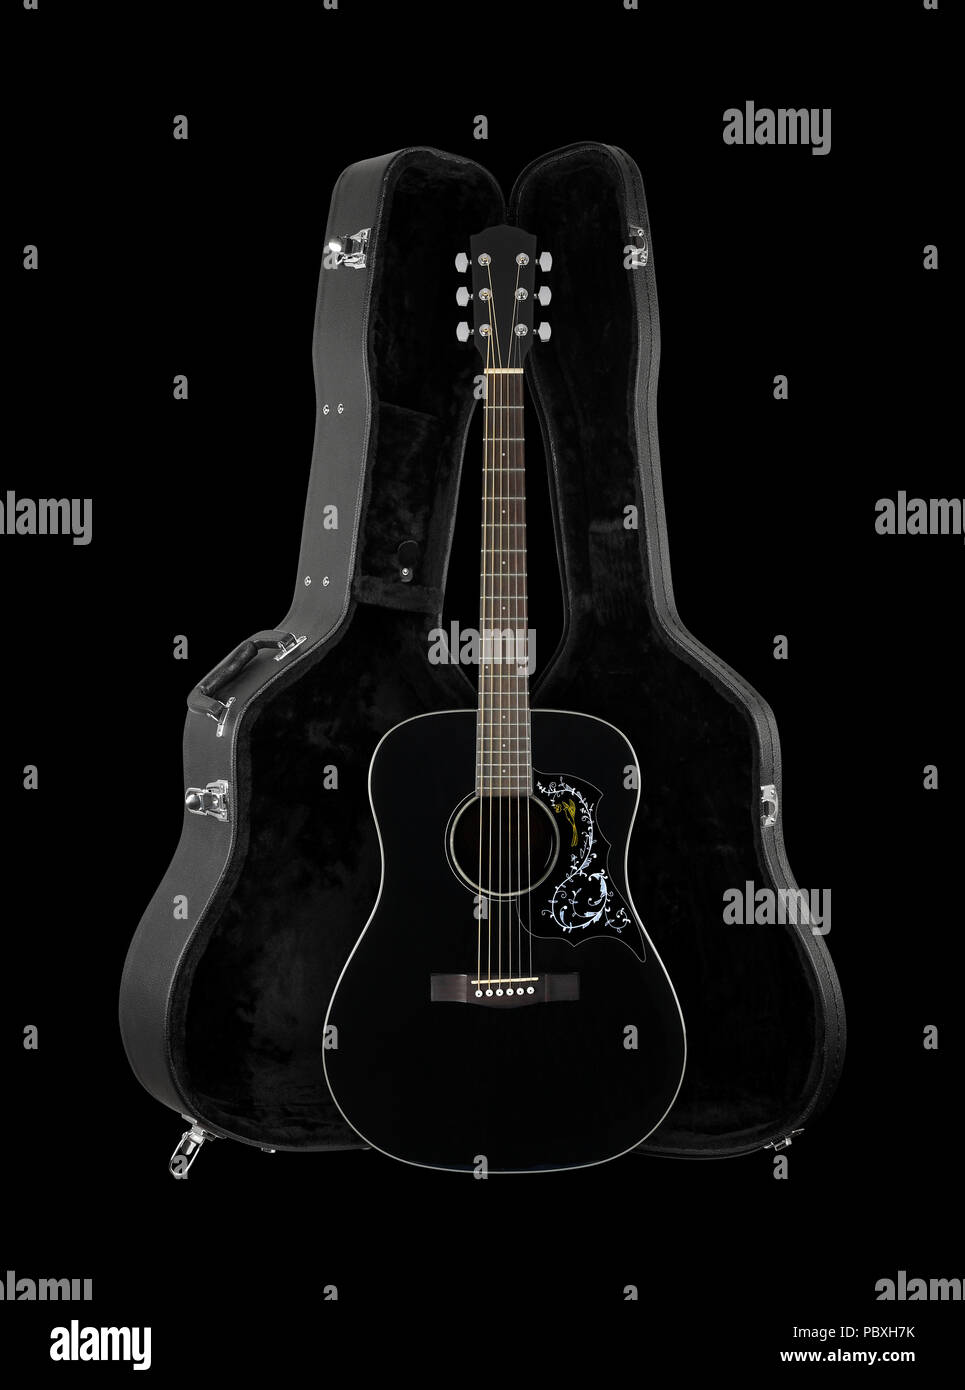 Musical instrument - Front view black folk acoustic country flower bird pickguard western guitar in hard case  isolated on a black background. Stock Photo